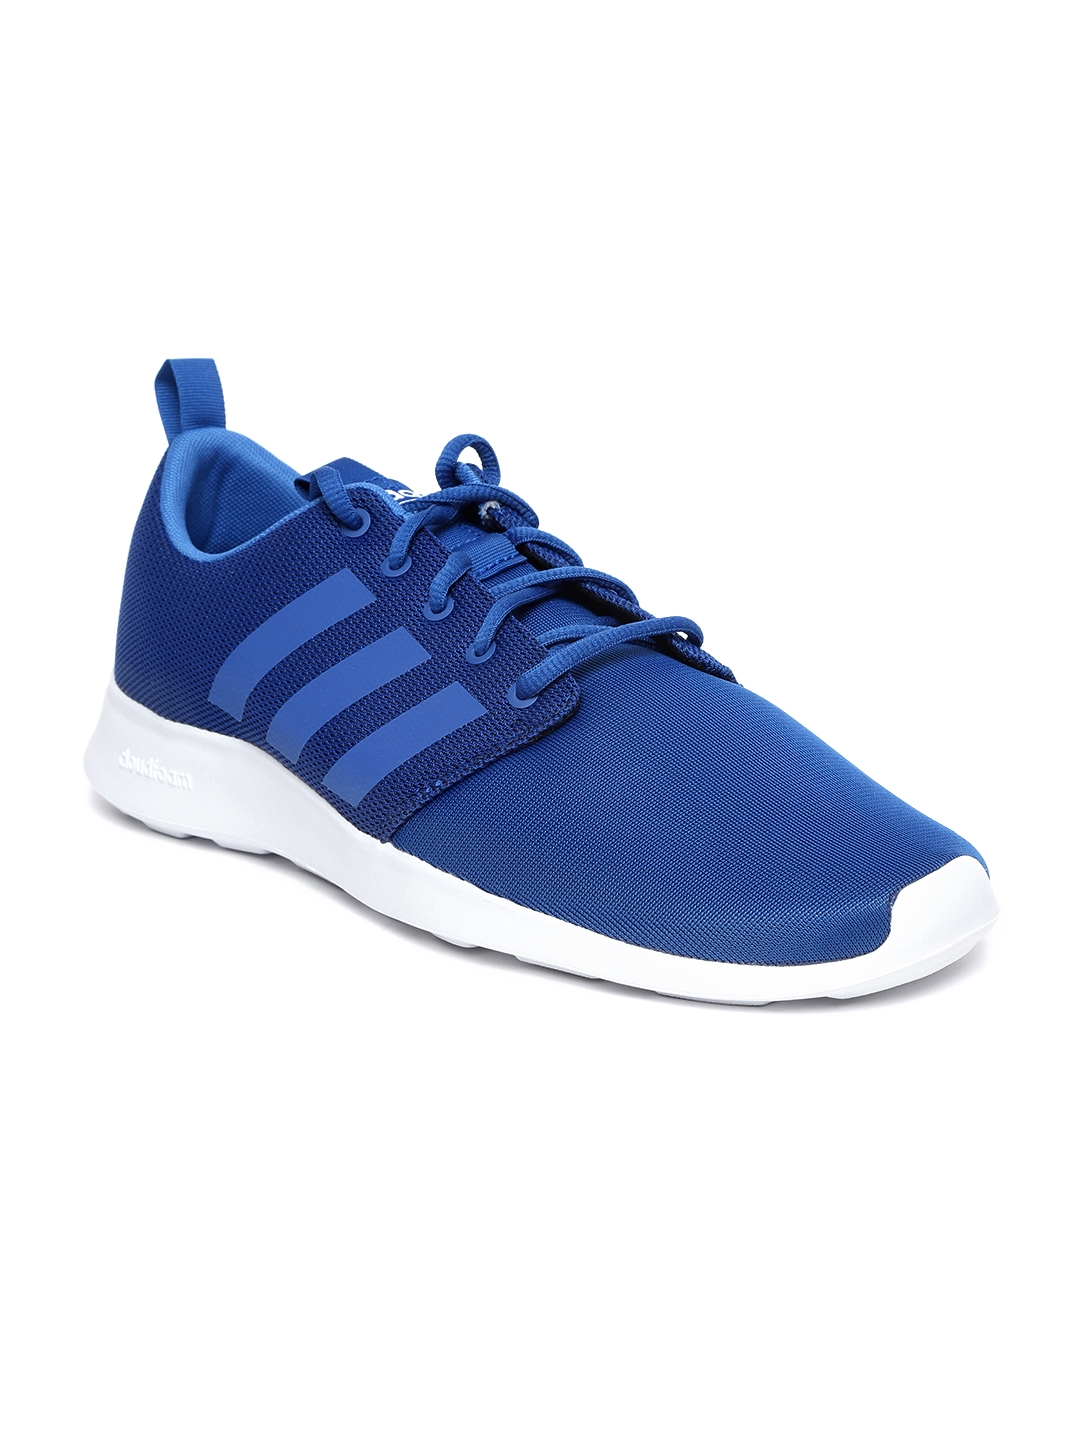 879c39aa0d0f1 Buy ADIDAS Men Blue CF Swift Racer Running Shoes - Sports Shoes for ...